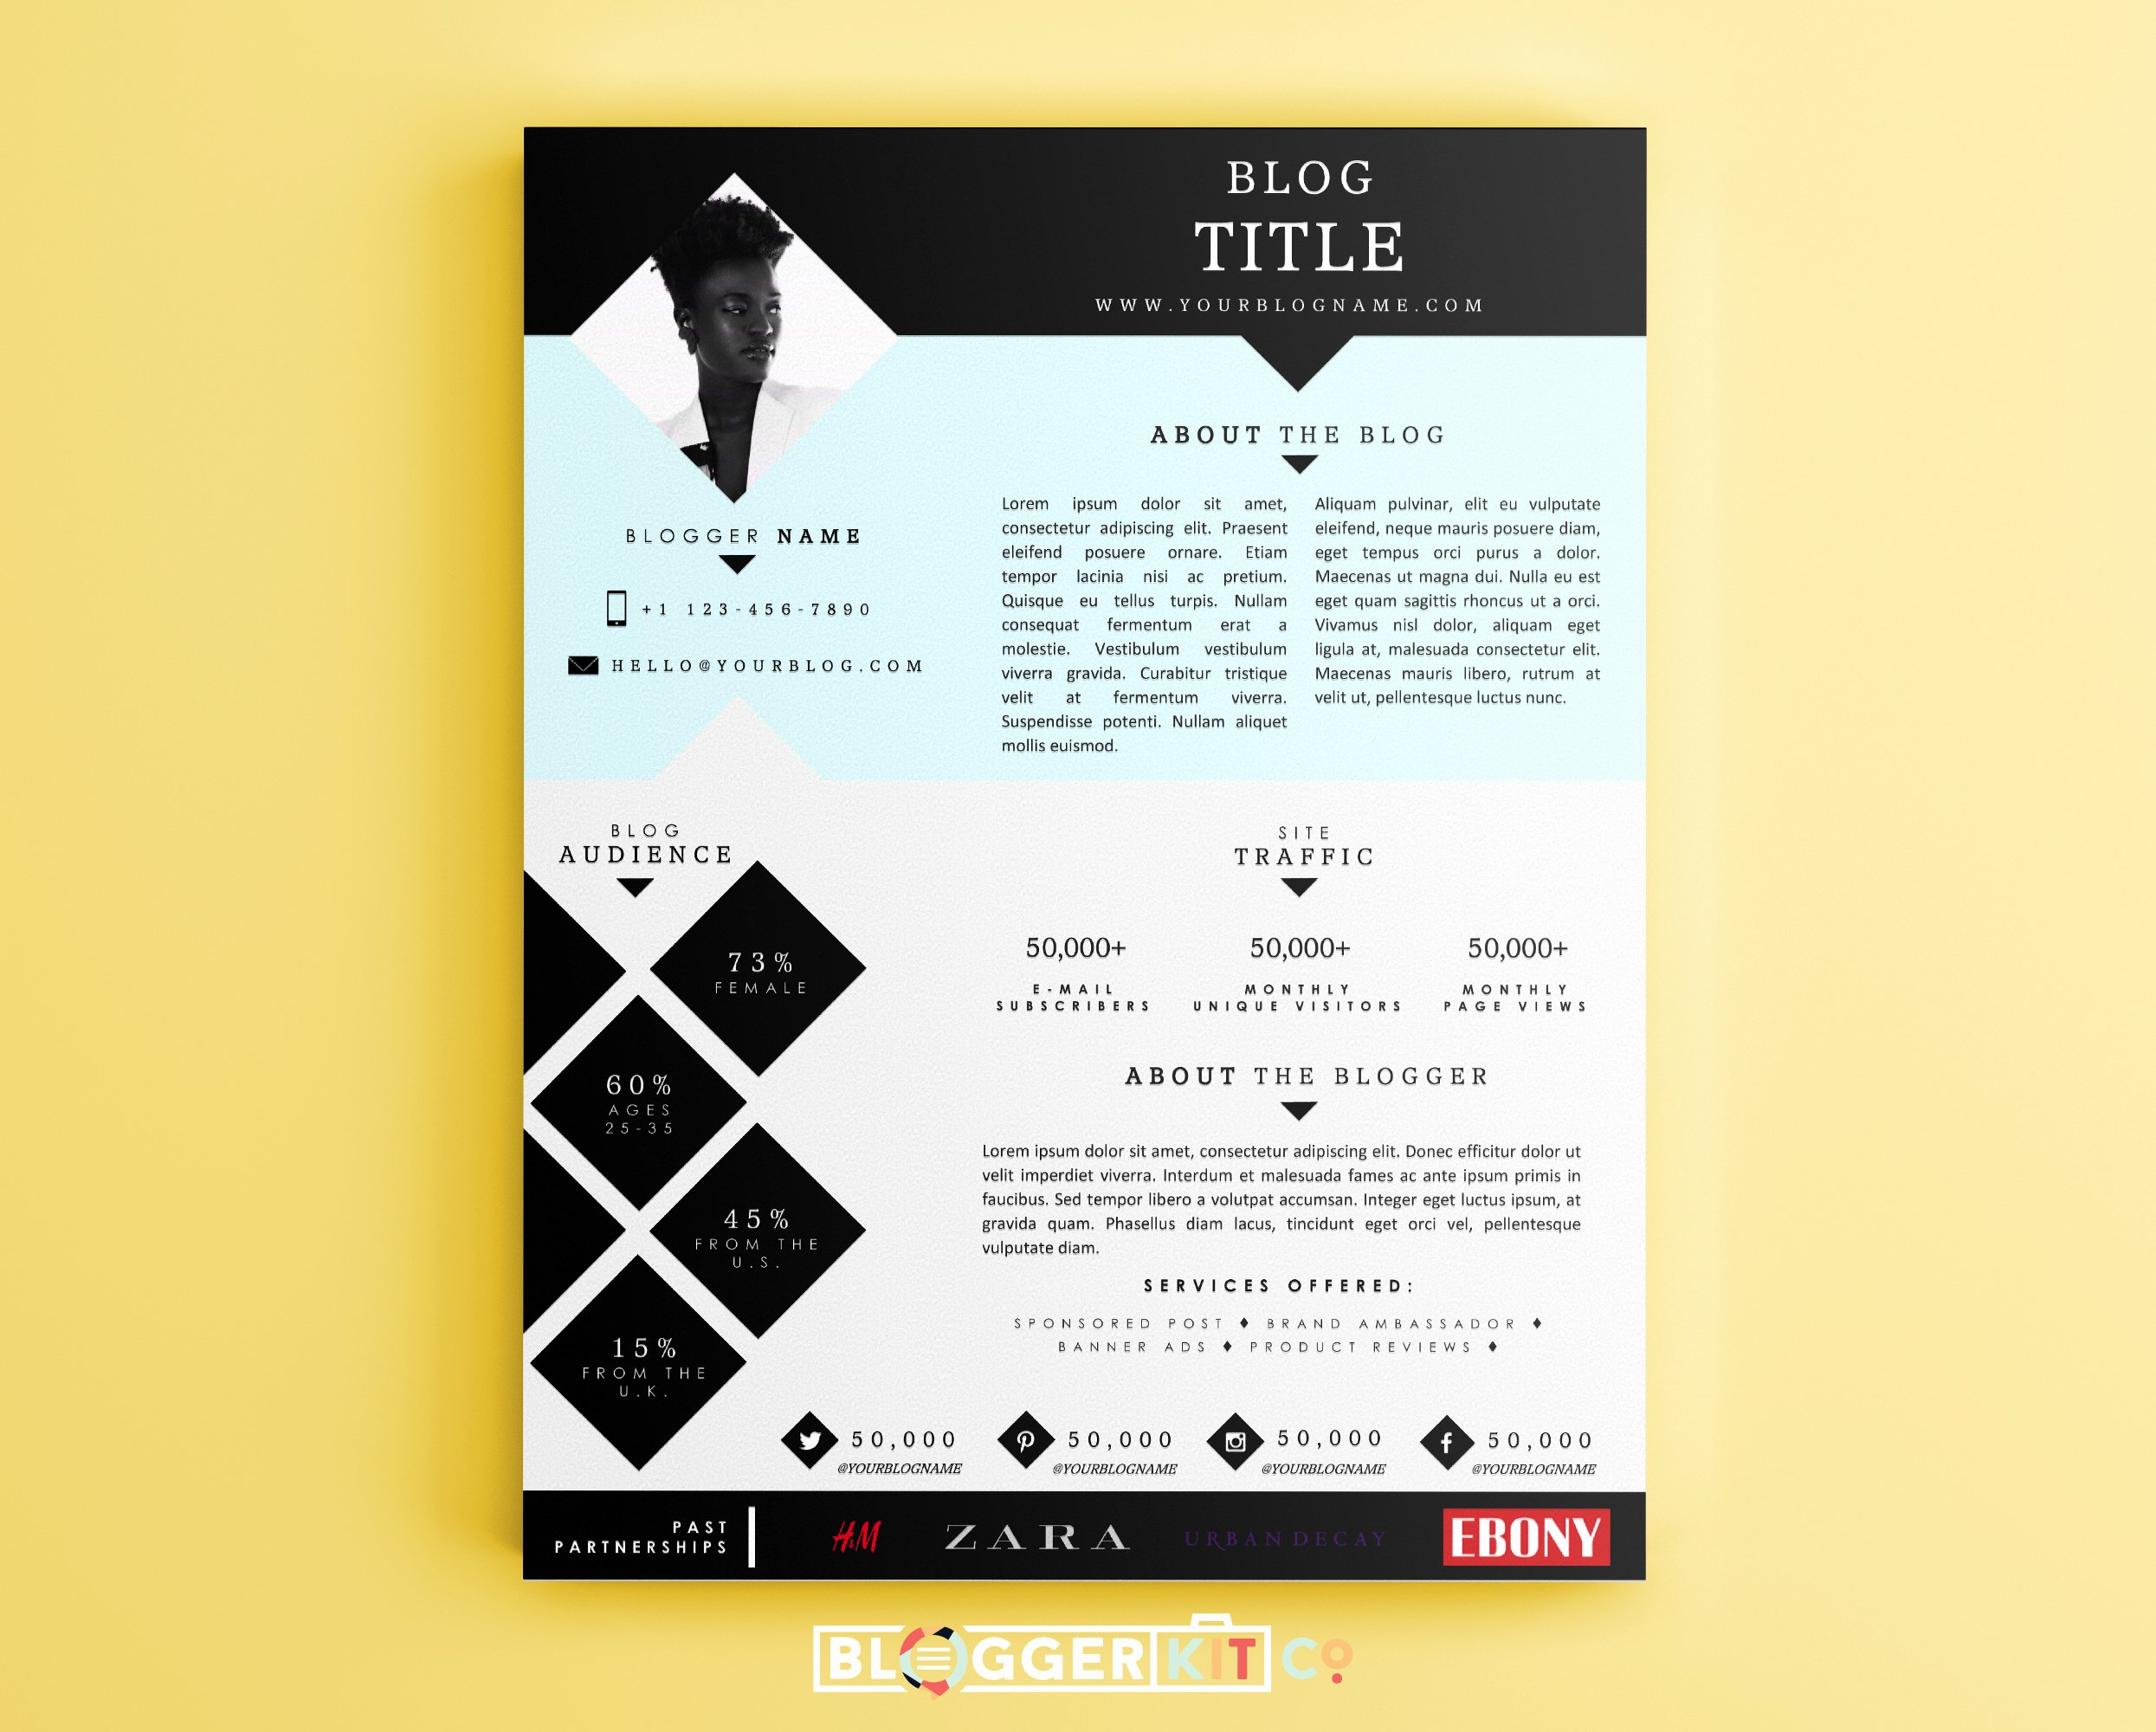 Blogger Media Kit Template Lovely the Goal Getter Media Kit Template